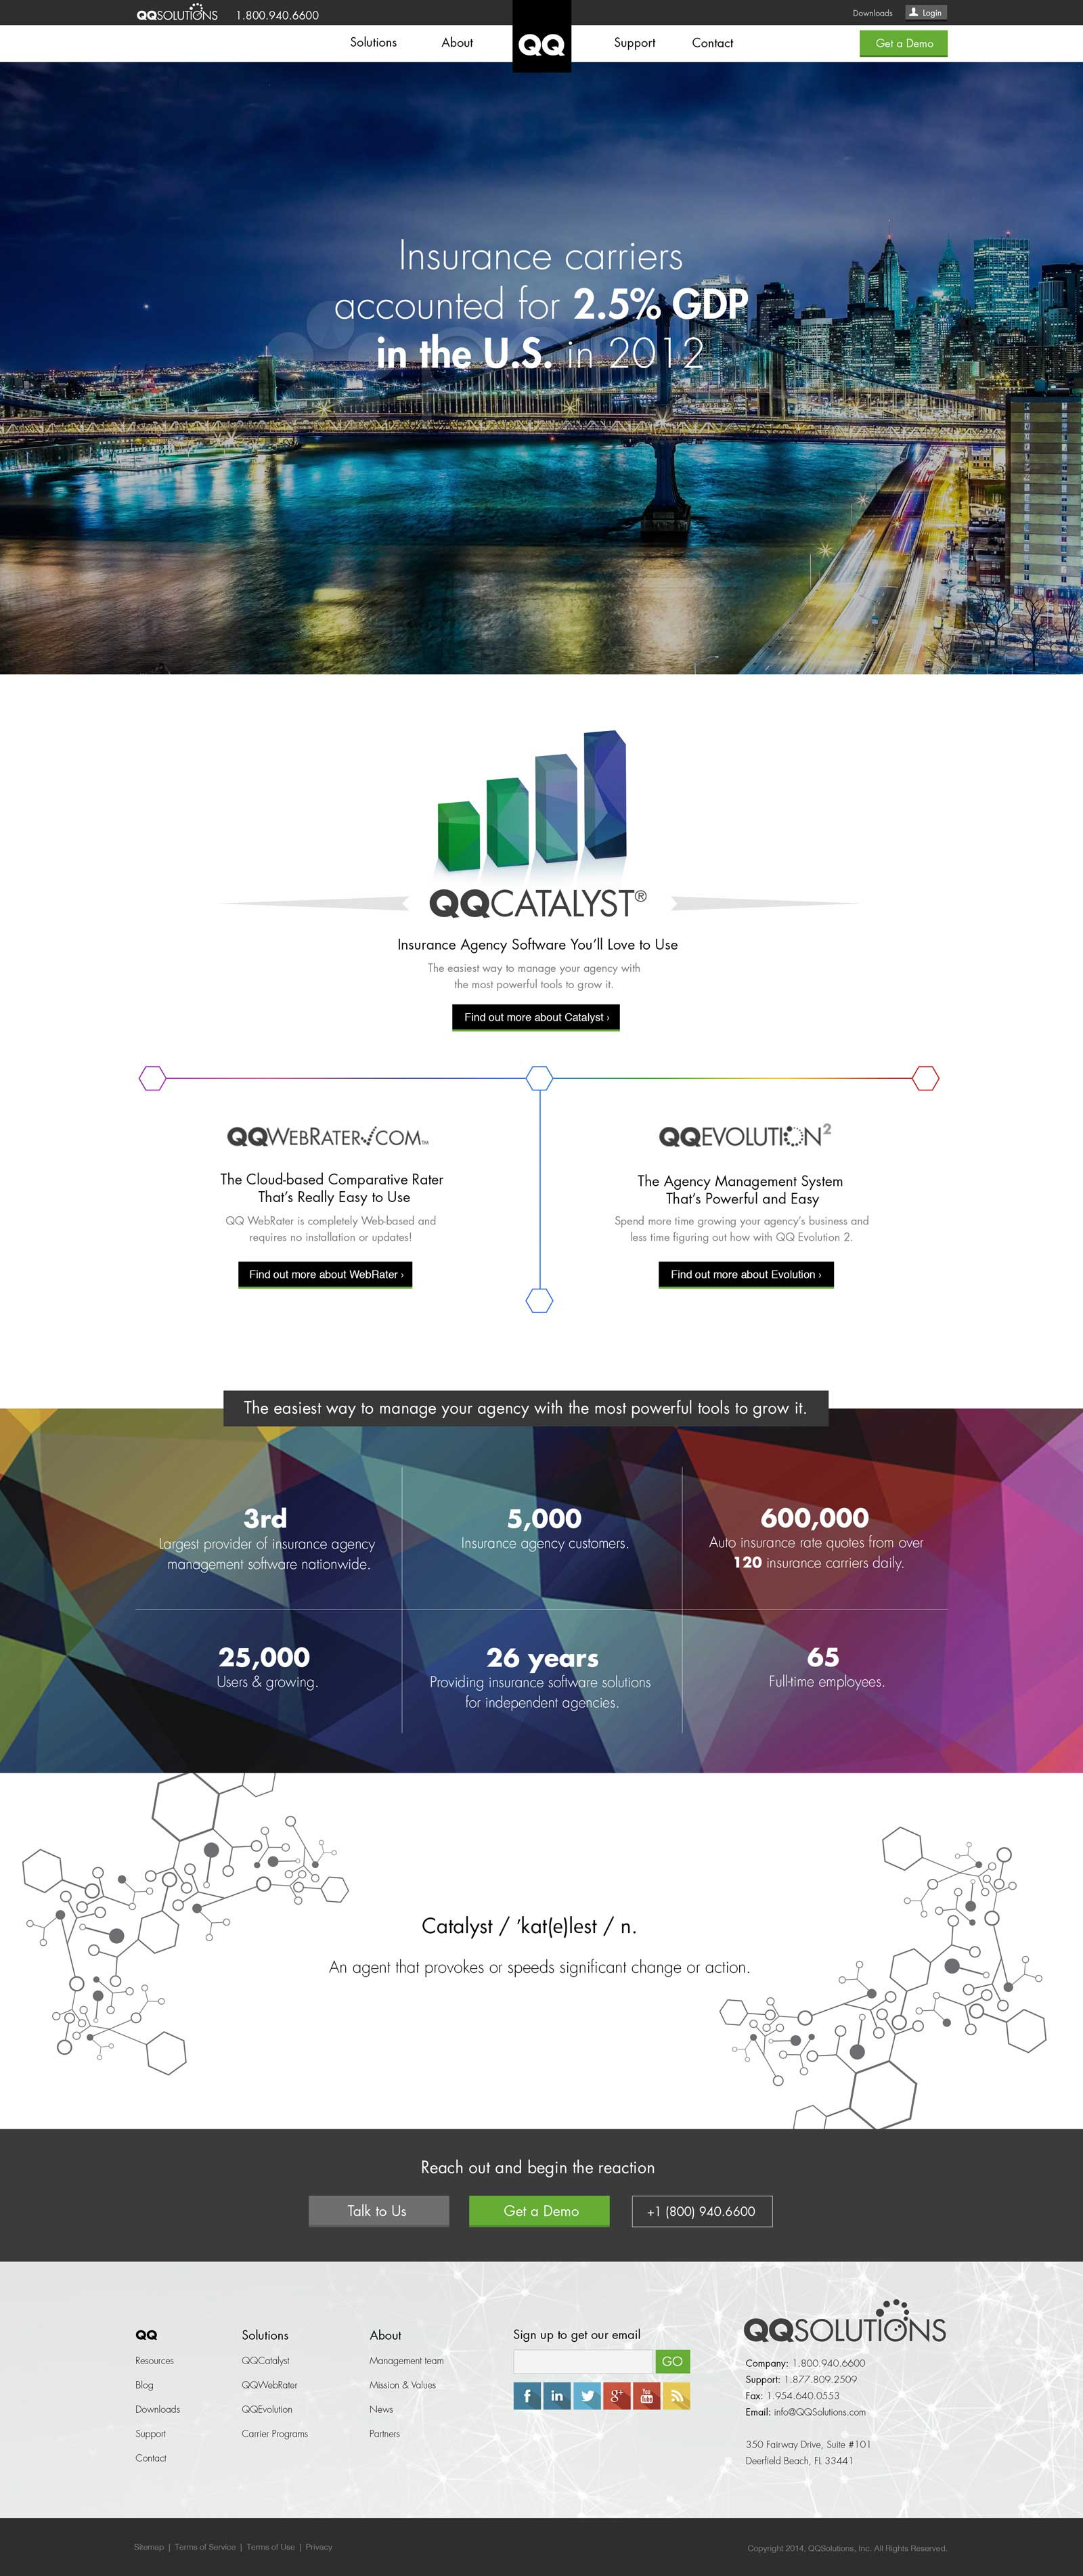 QQSolutions Homepage Design